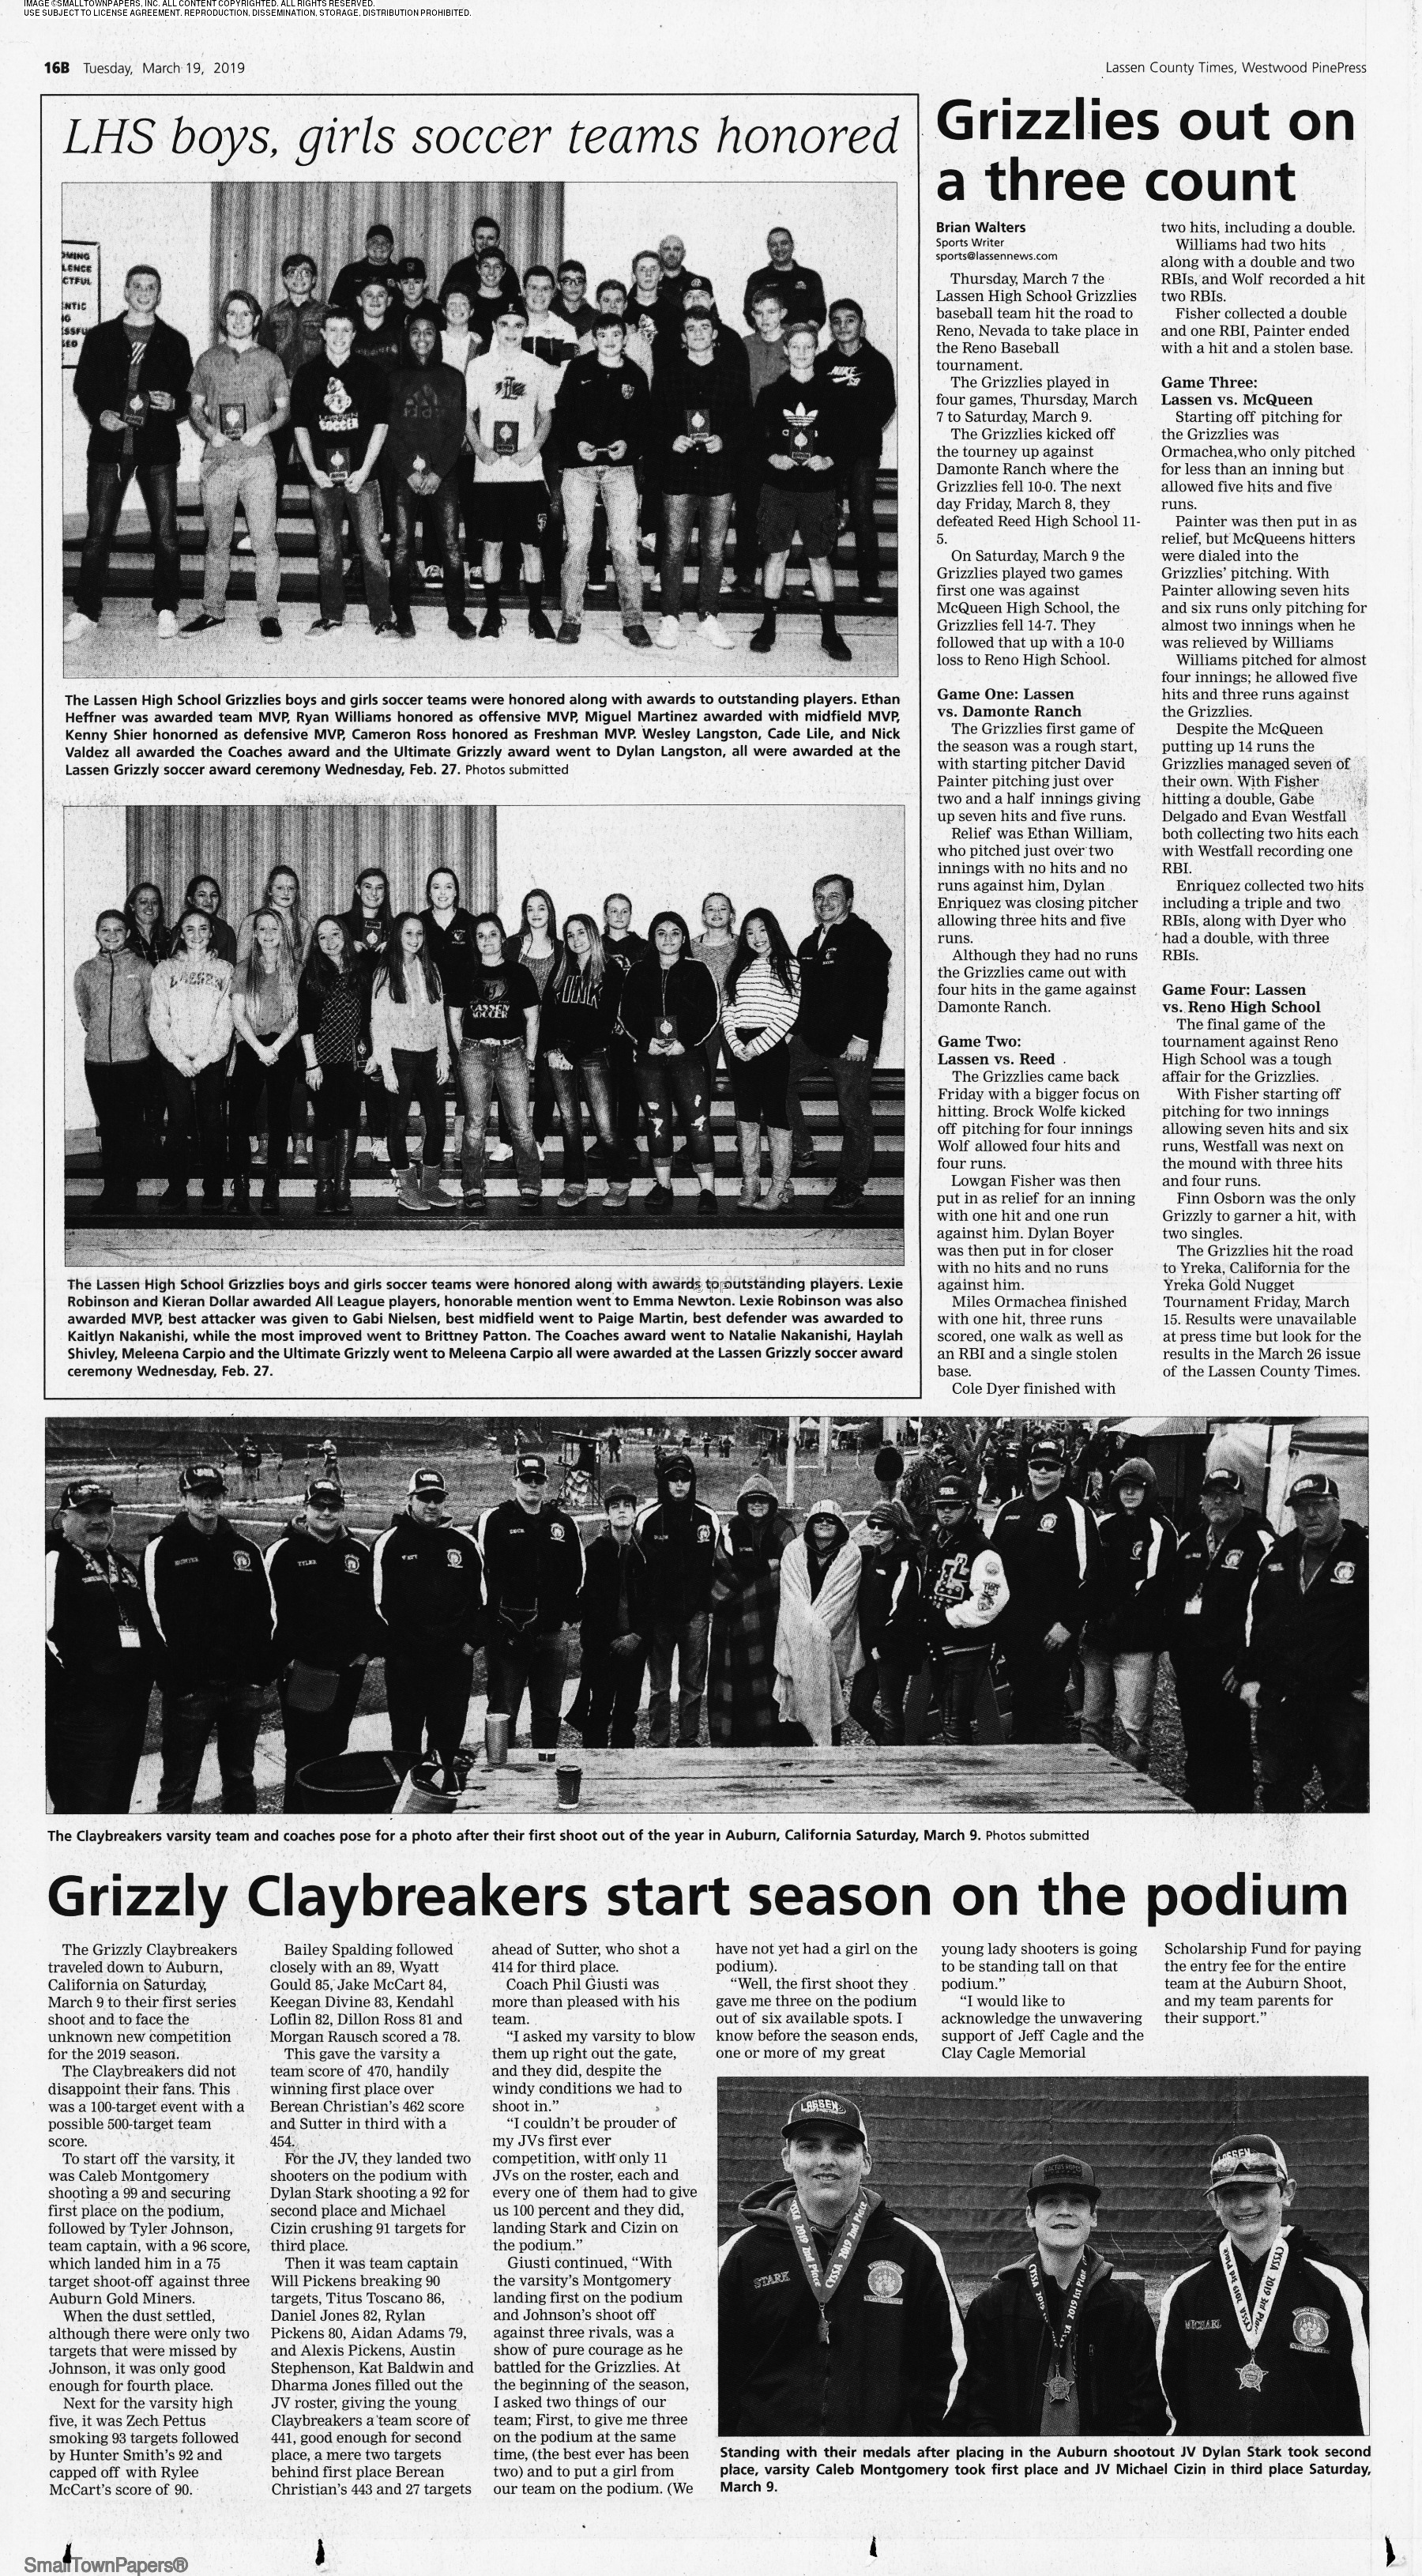 Lassen County Times March 19, 2019: Page 28